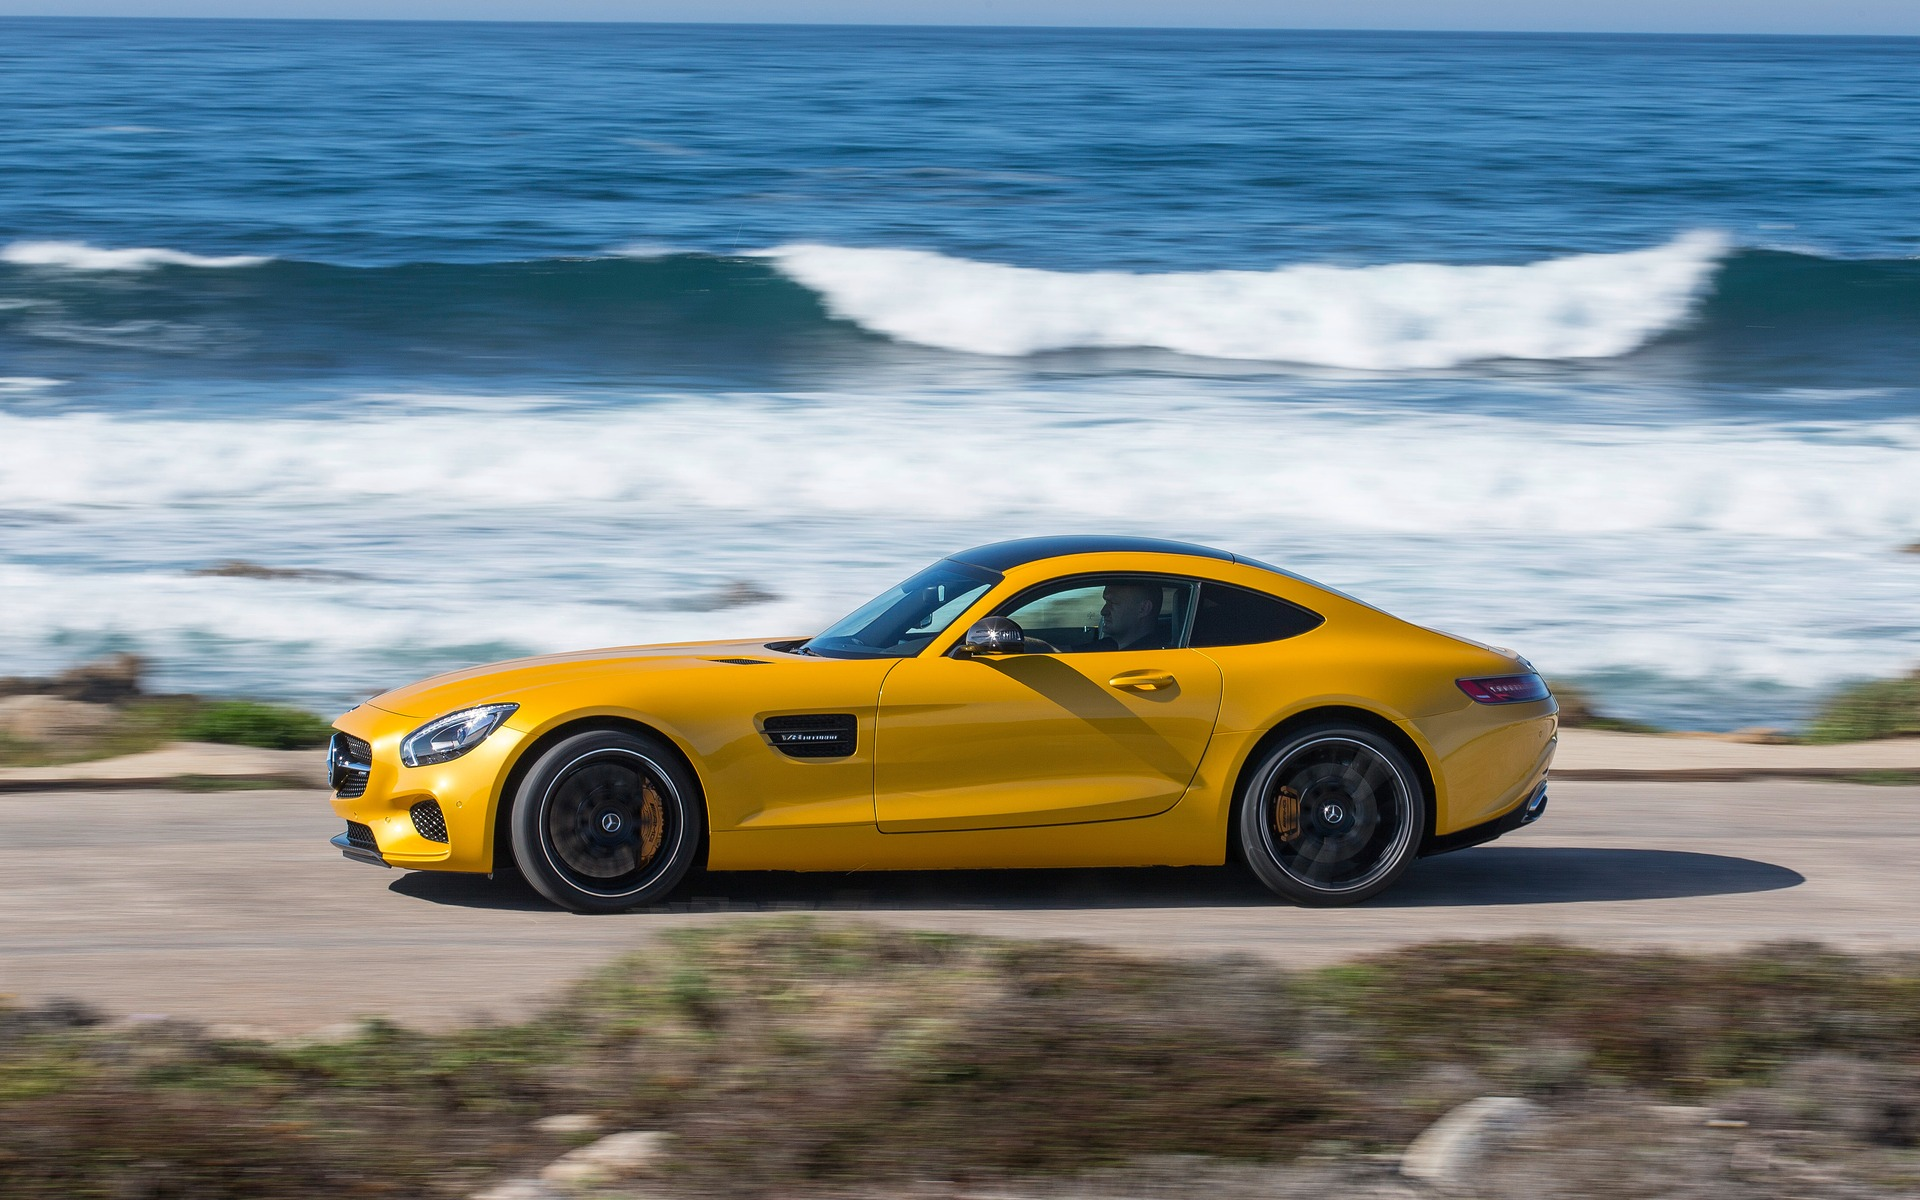 https://i.gaw.to/photos/1/7/7/177389_2016_Mercedes-Benz_AMG_GT.jpg